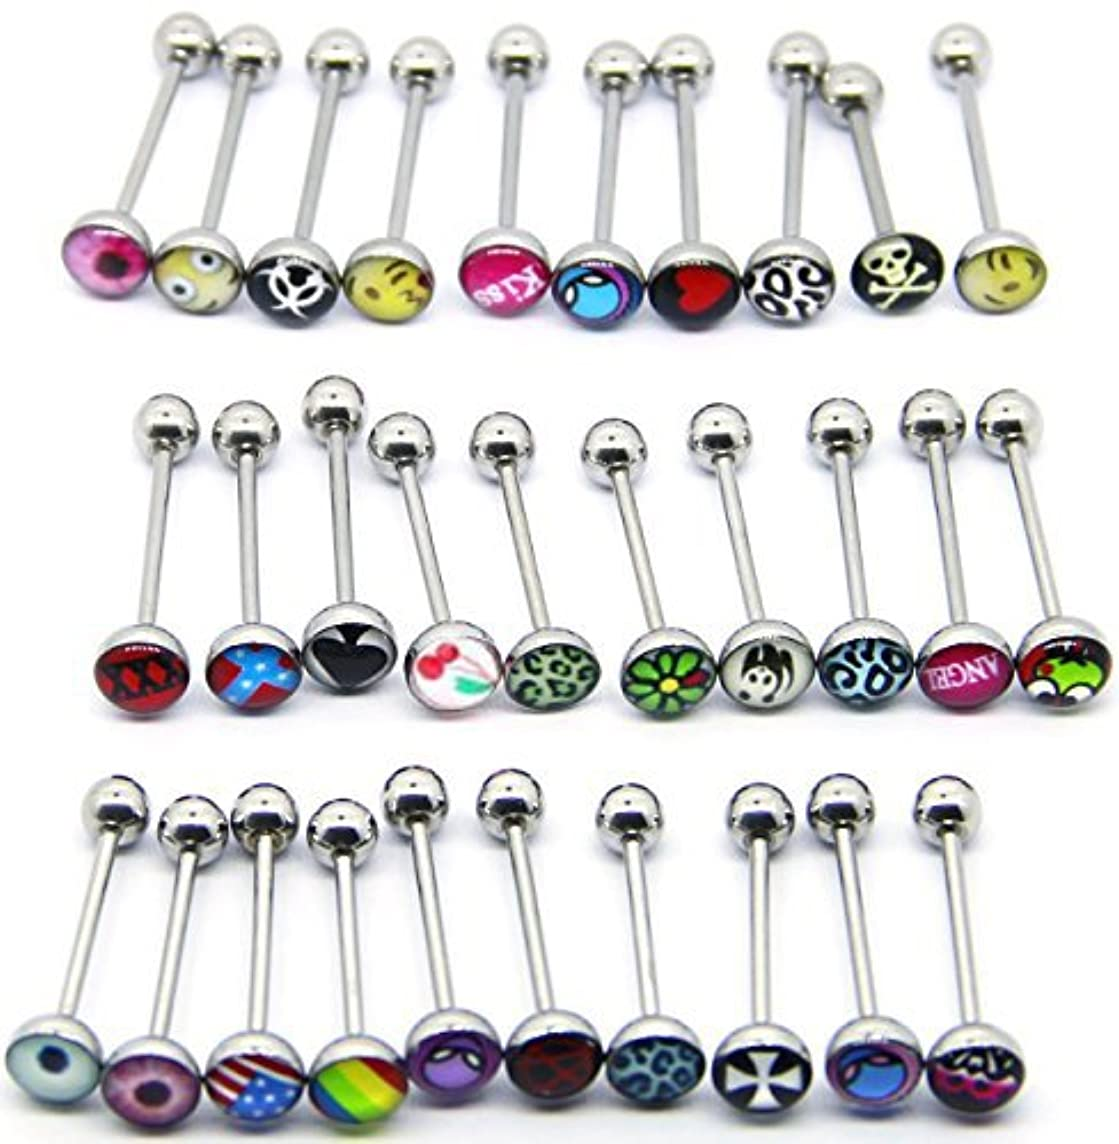 CrazyPiercing 30 PCS (a lot) 316 surgical Steel Metal Tongue rings barbells body piercing